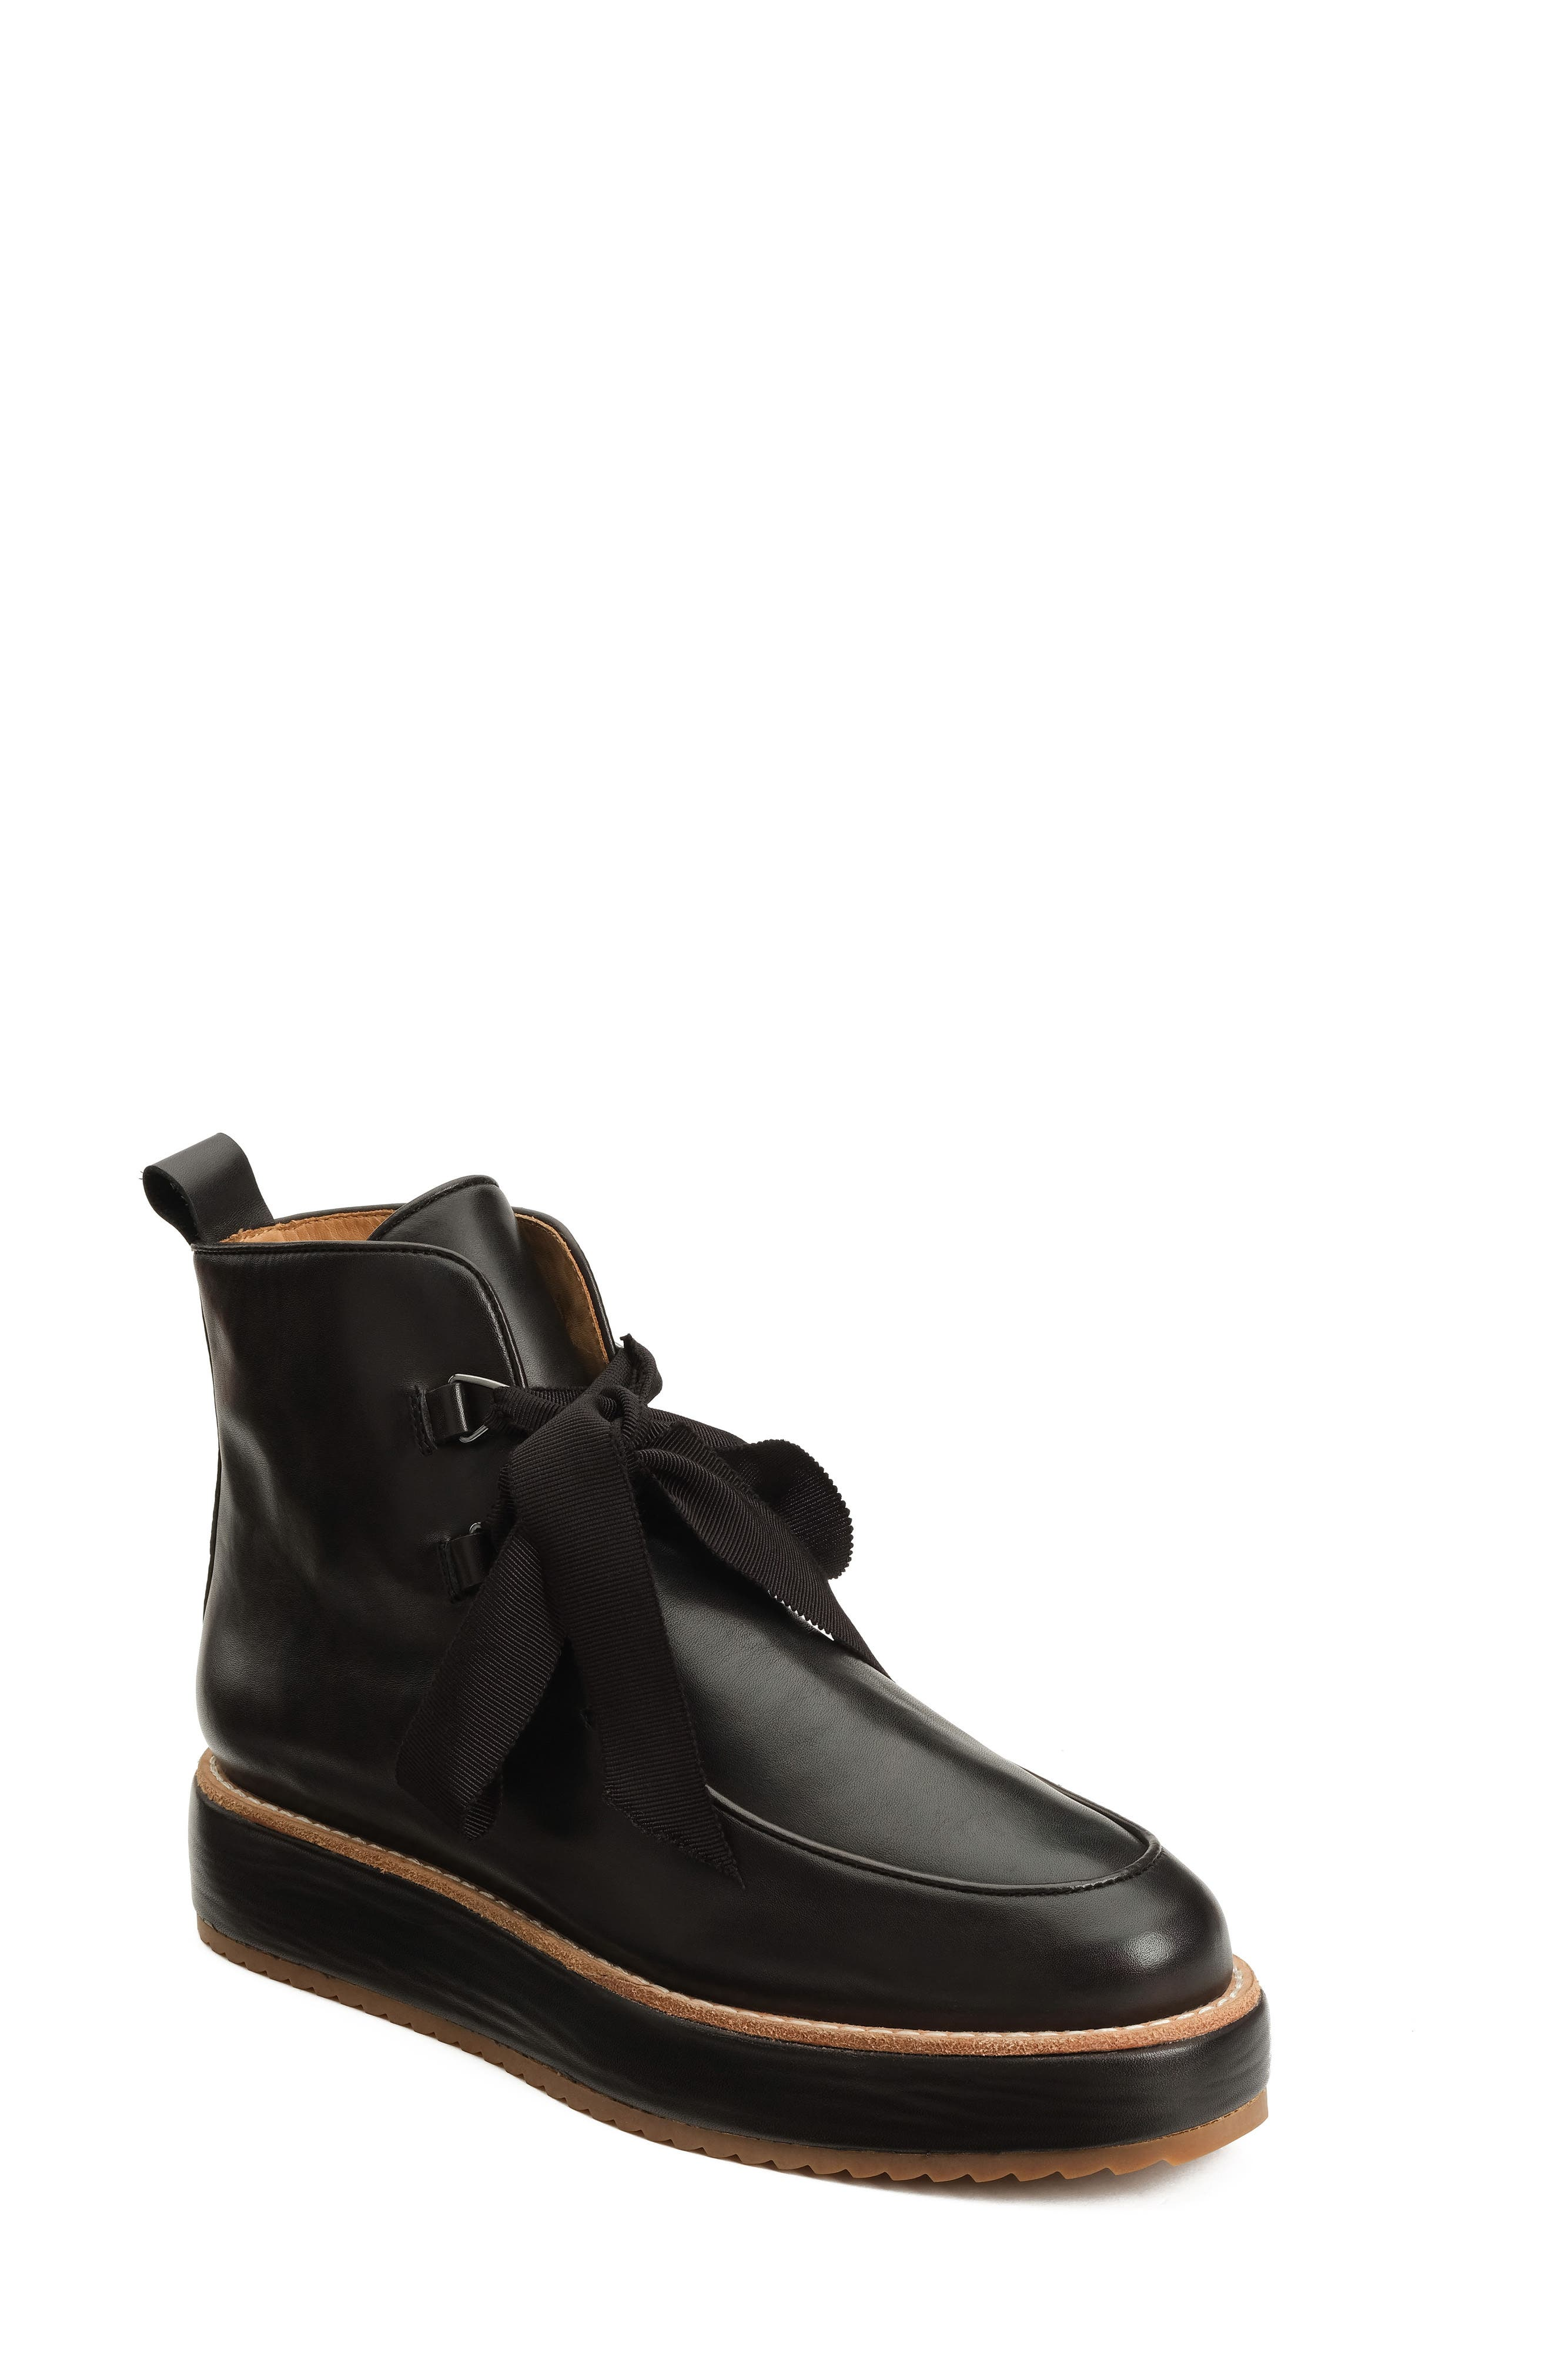 Penny Bootie,                         Main,                         color, Black Box Calf